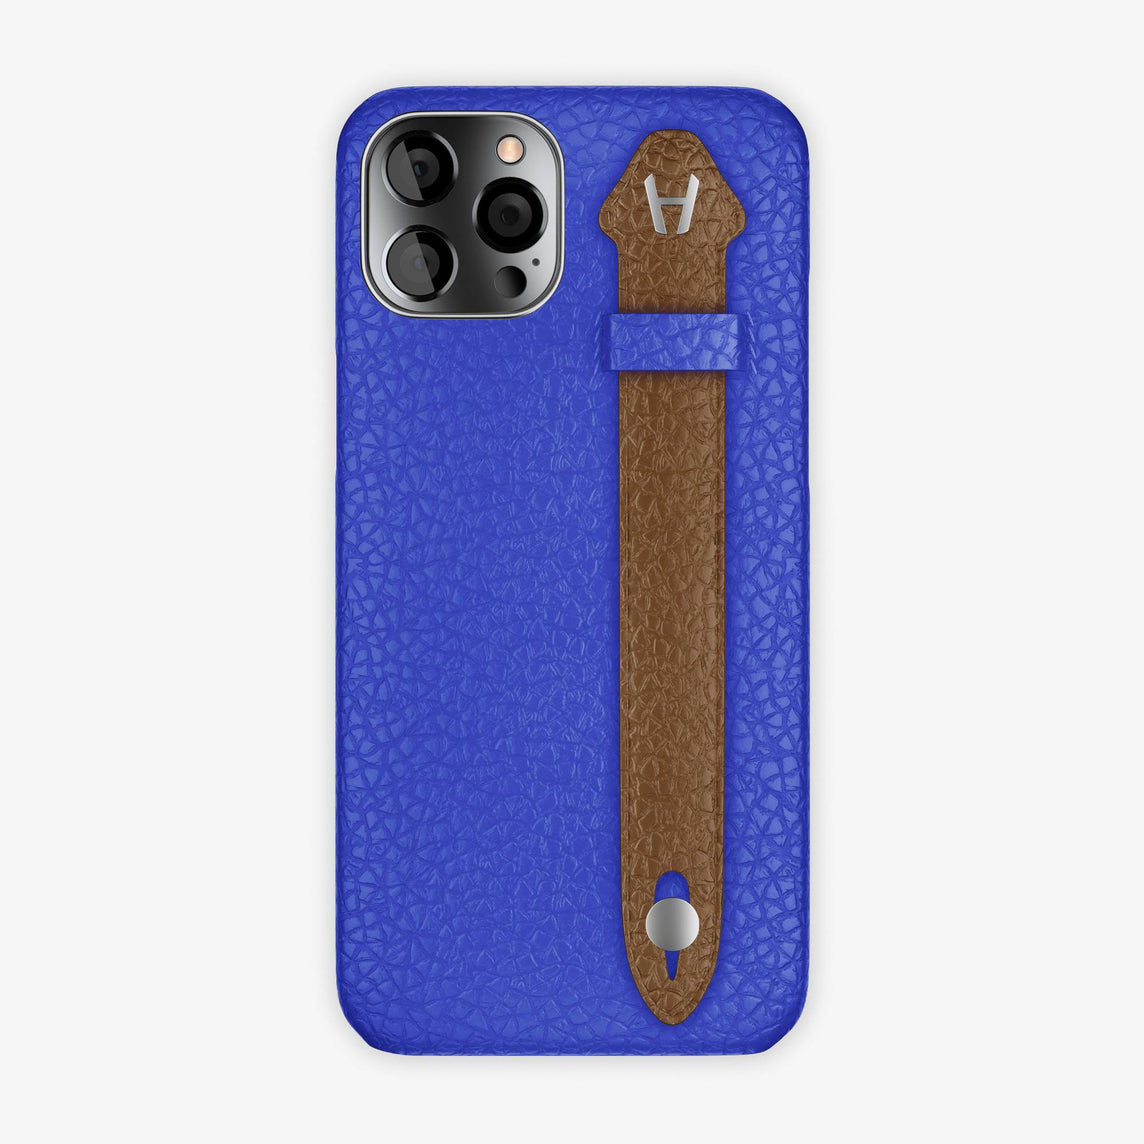 Calfskin Side Finger Case iPhone 12 Pro Max | Peony Blue/Brown - Stainless Steel